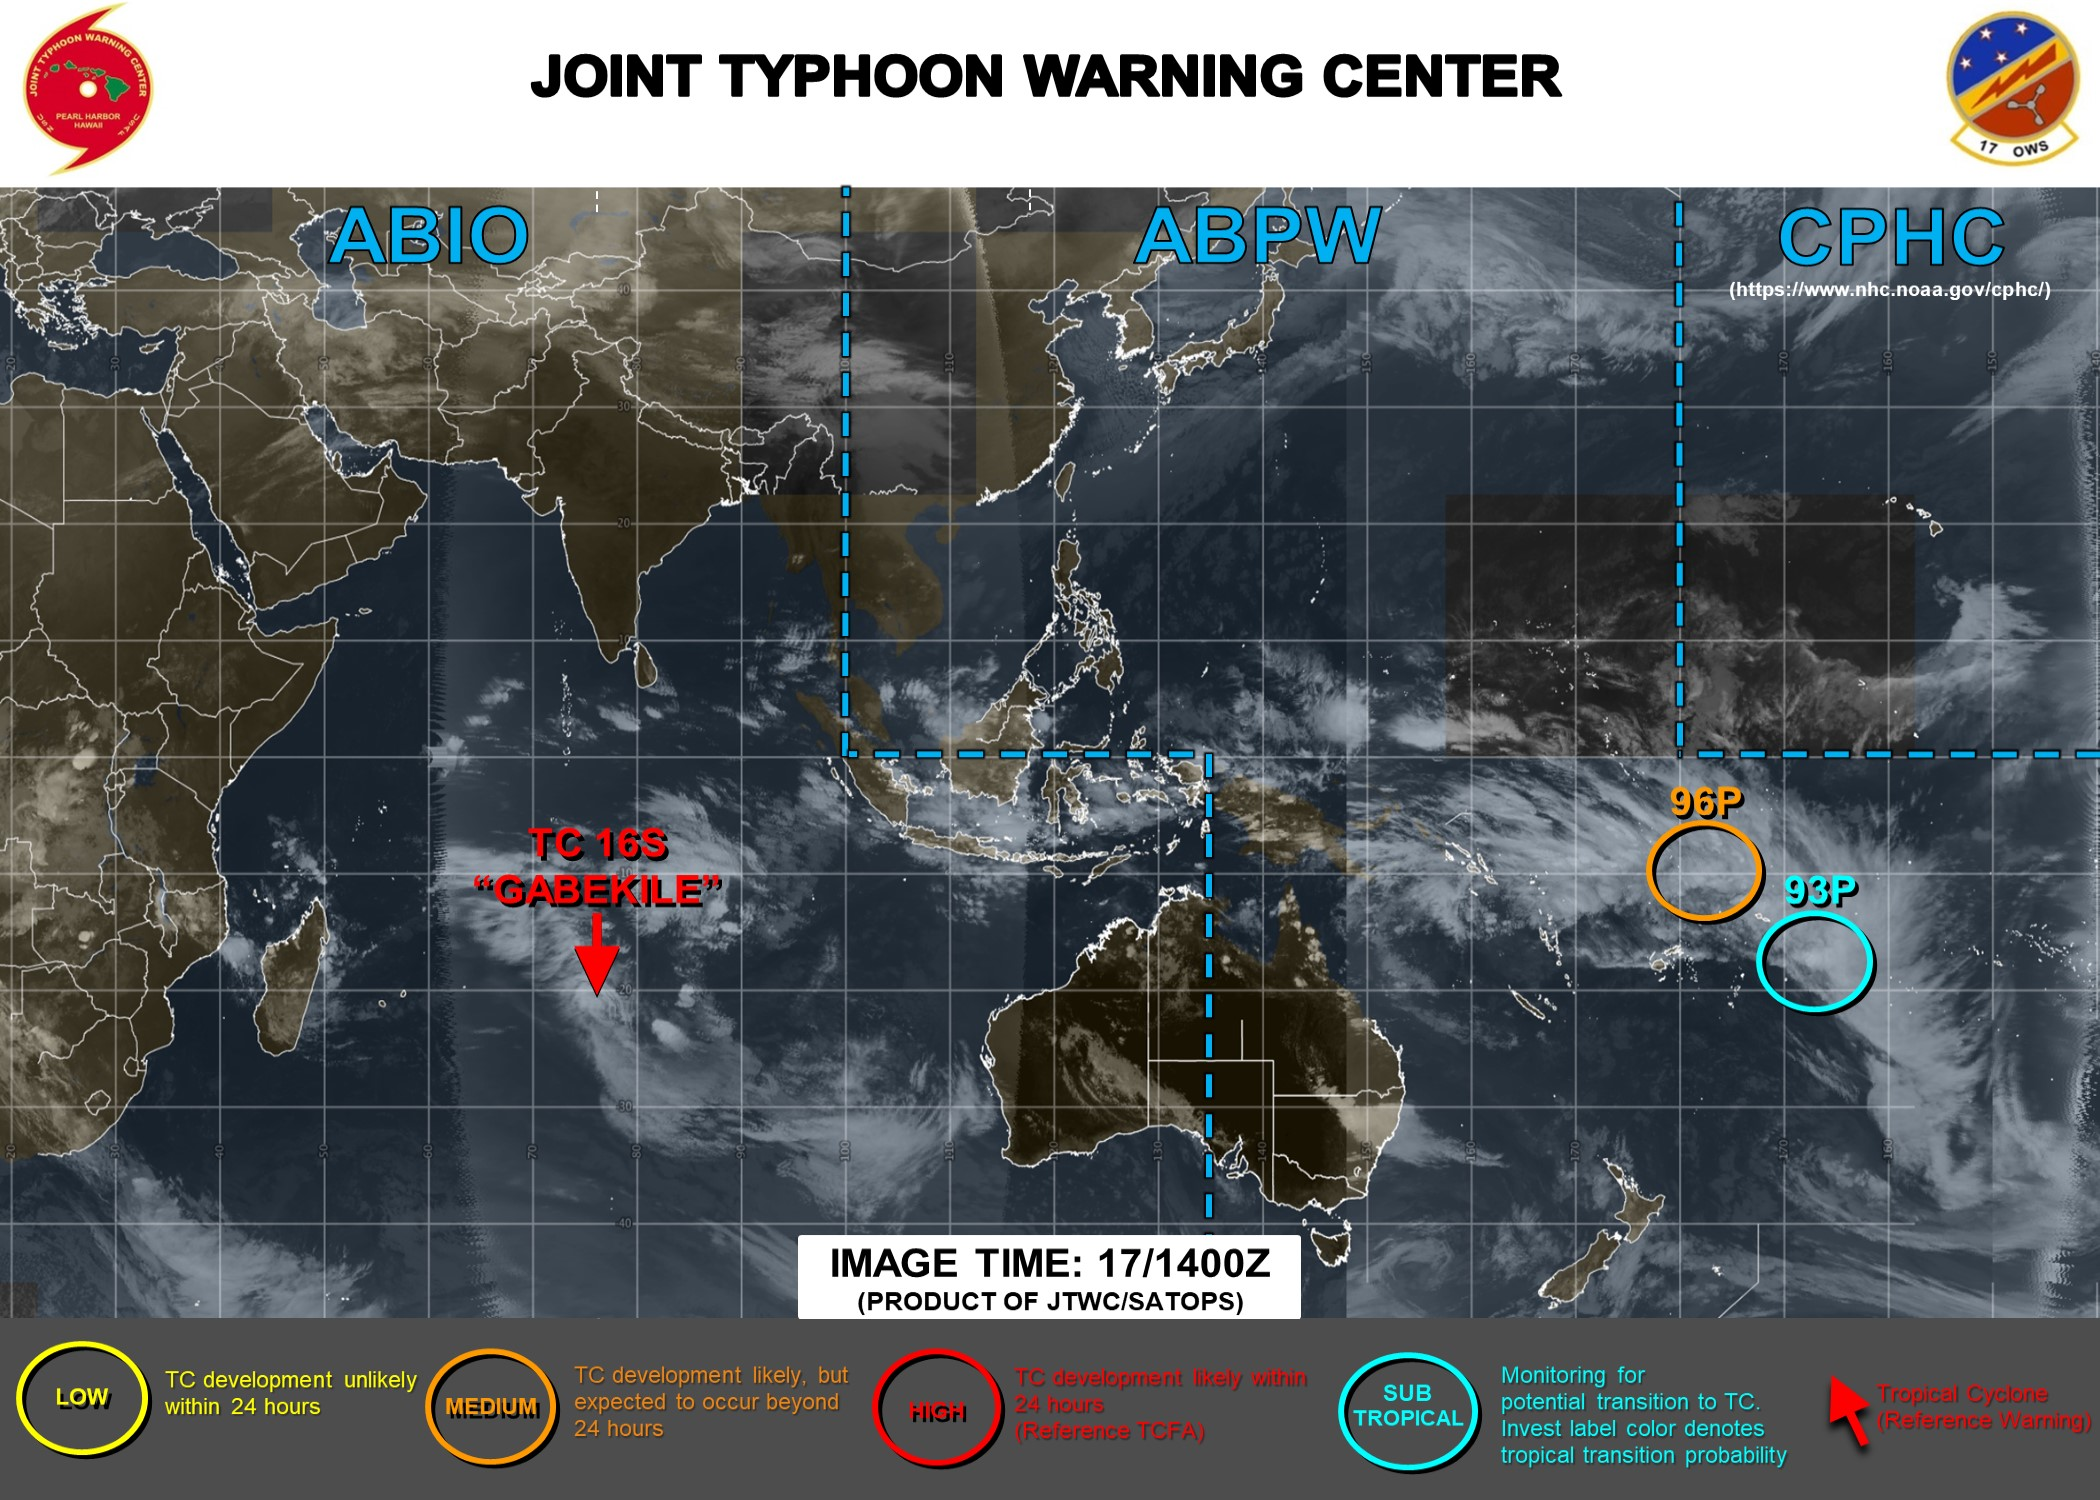 TC 16S(GABEKILE): unraveling slow-moving and Invest 93P & 96P: updates at 17/15UTC